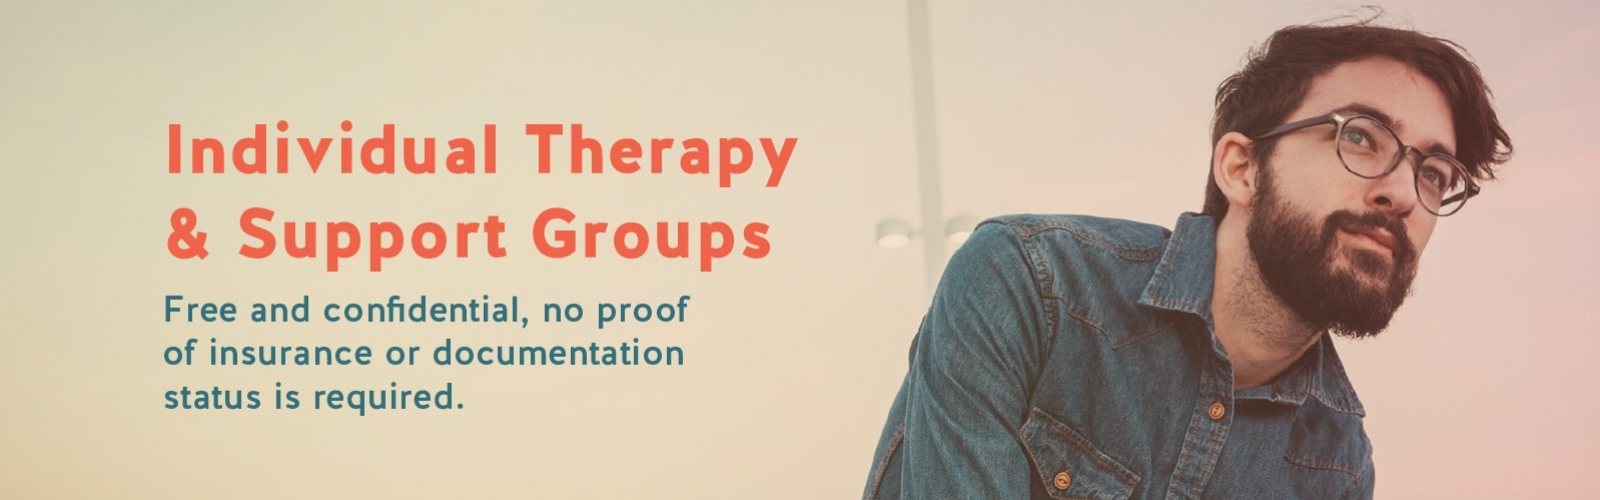 Individual Therapy & Support Groups